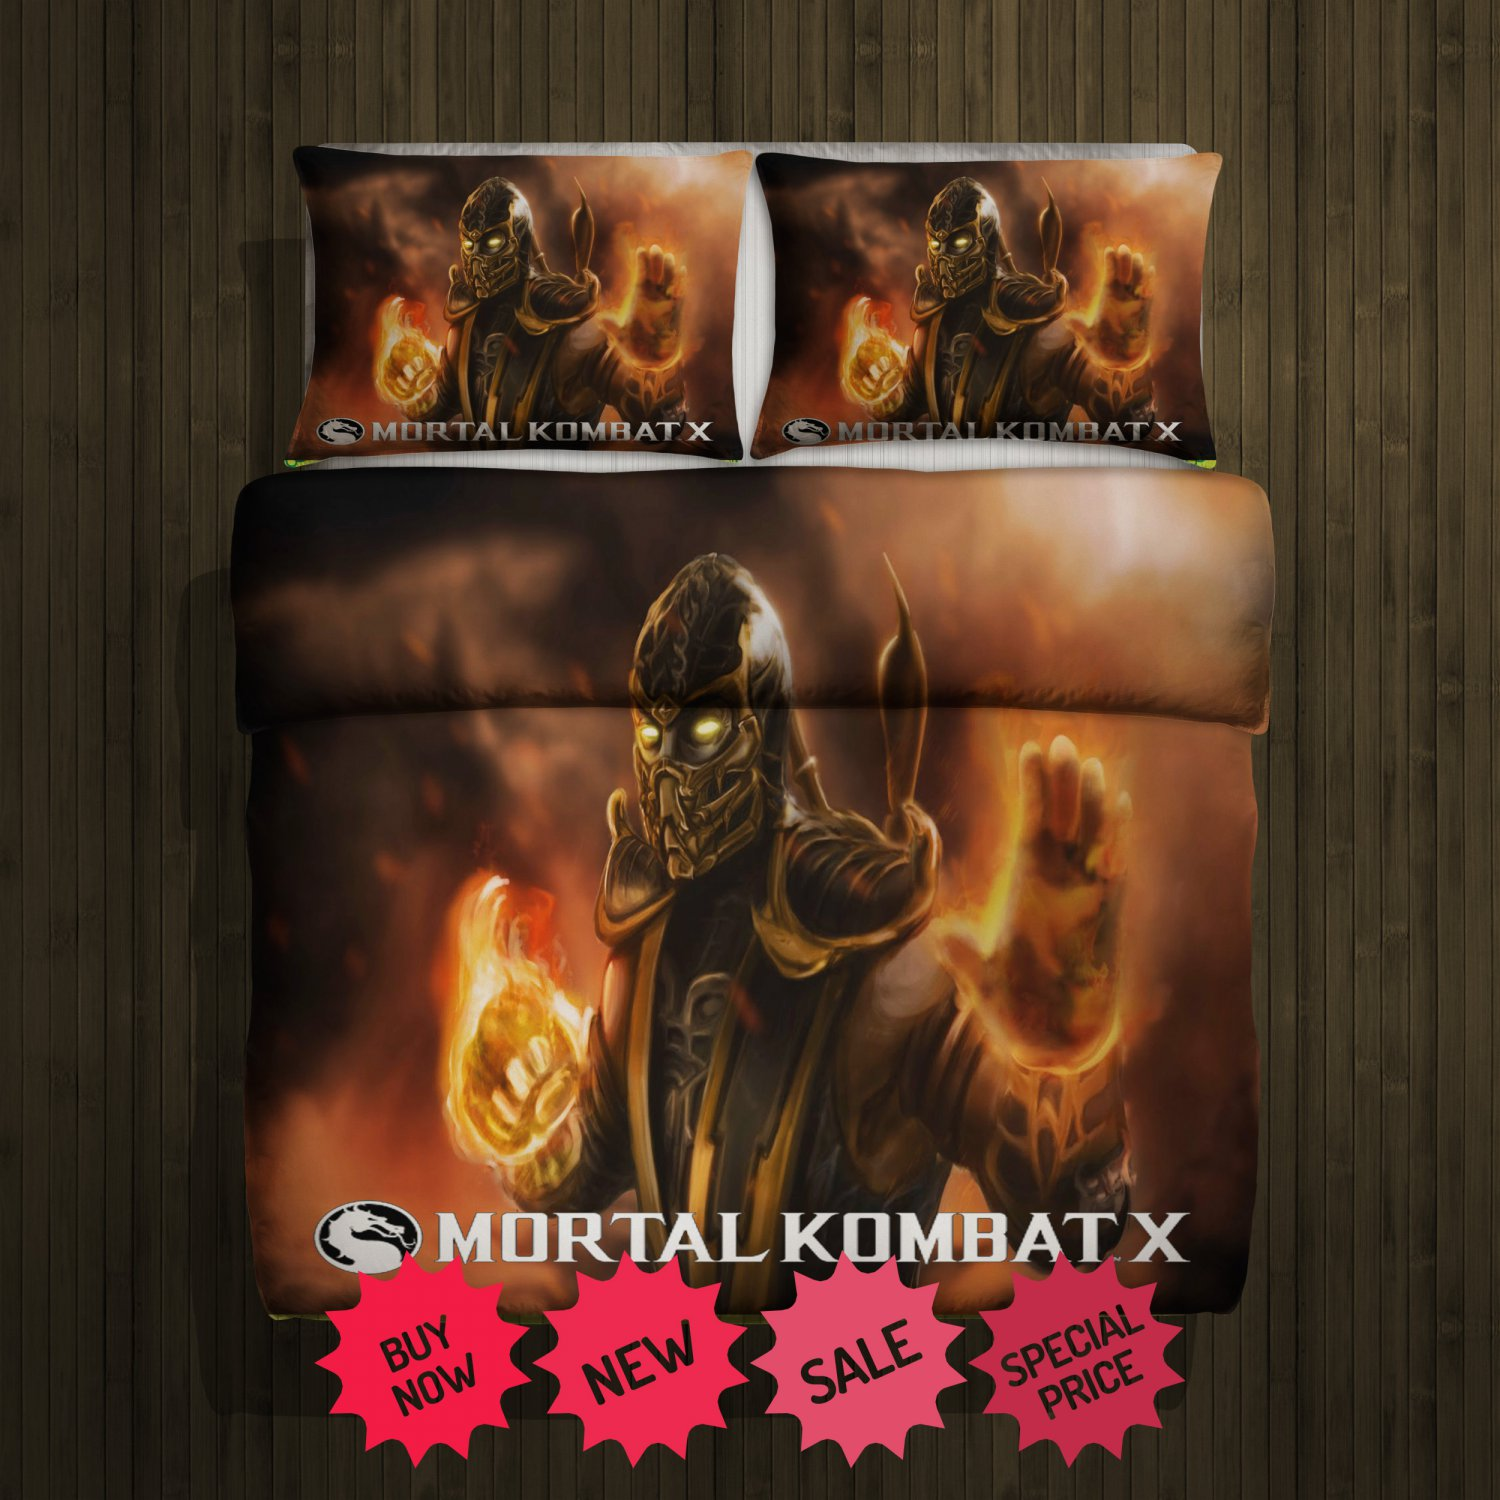 Mortal Kombat Blanket Large & 2 Pillow Cases #96550774 ,96550775(2)